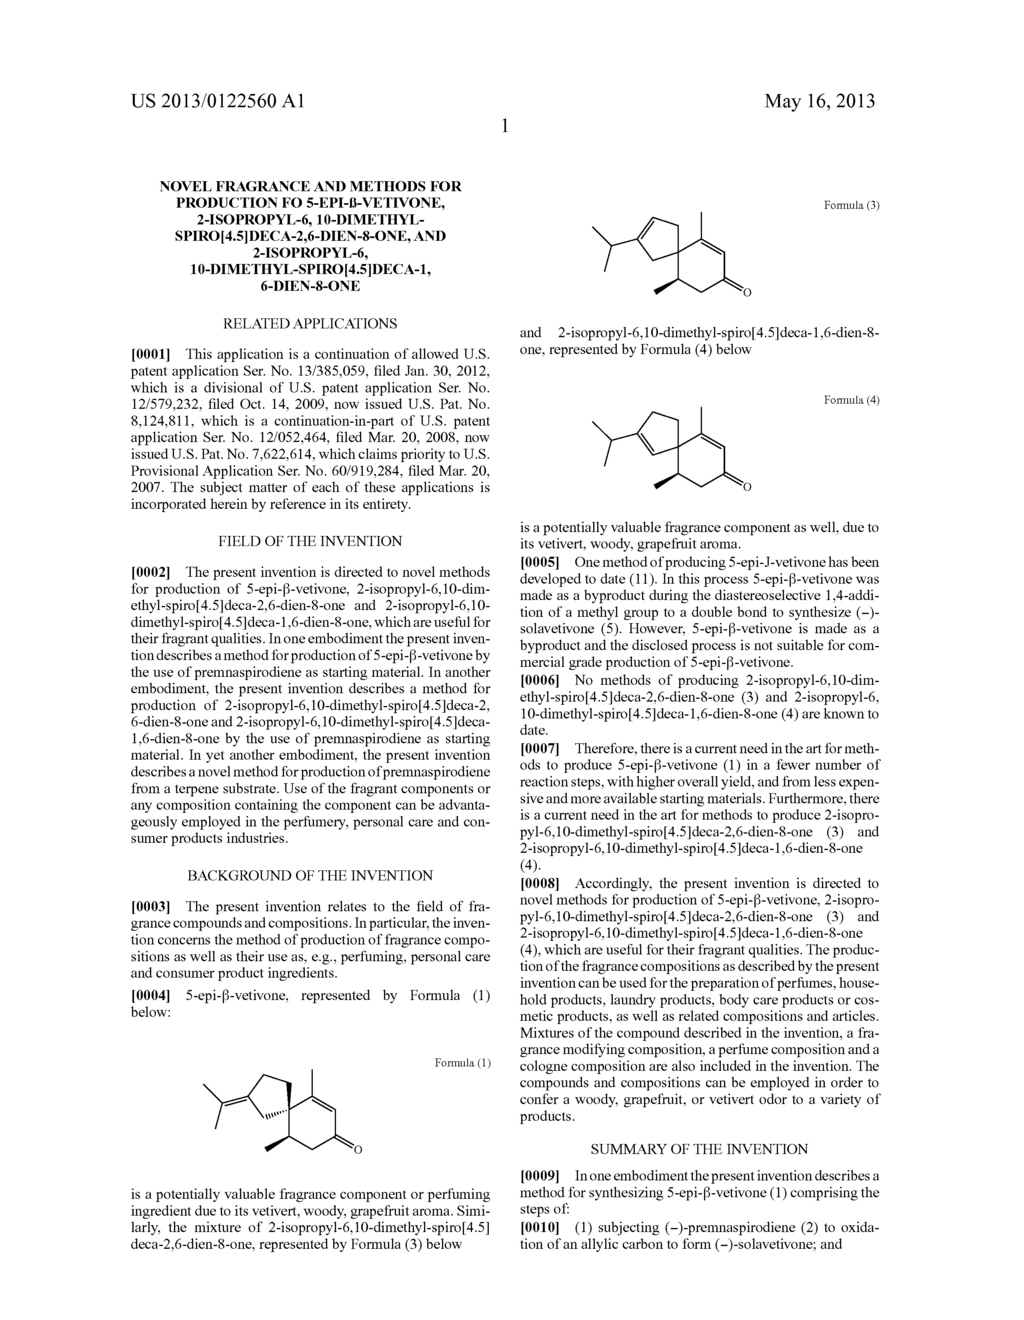 Novel fragrance and methods for production fo 5-epi- -vetivone,     2-isopropyl-6, 10-dimethyl-spiro[4.5]deca-2,6-dien-8-one, and     2-isopropyl-6, 10-dimethyl-spiro[4.5]deca-1, 6-dien-8-one - diagram, schematic, and image 08